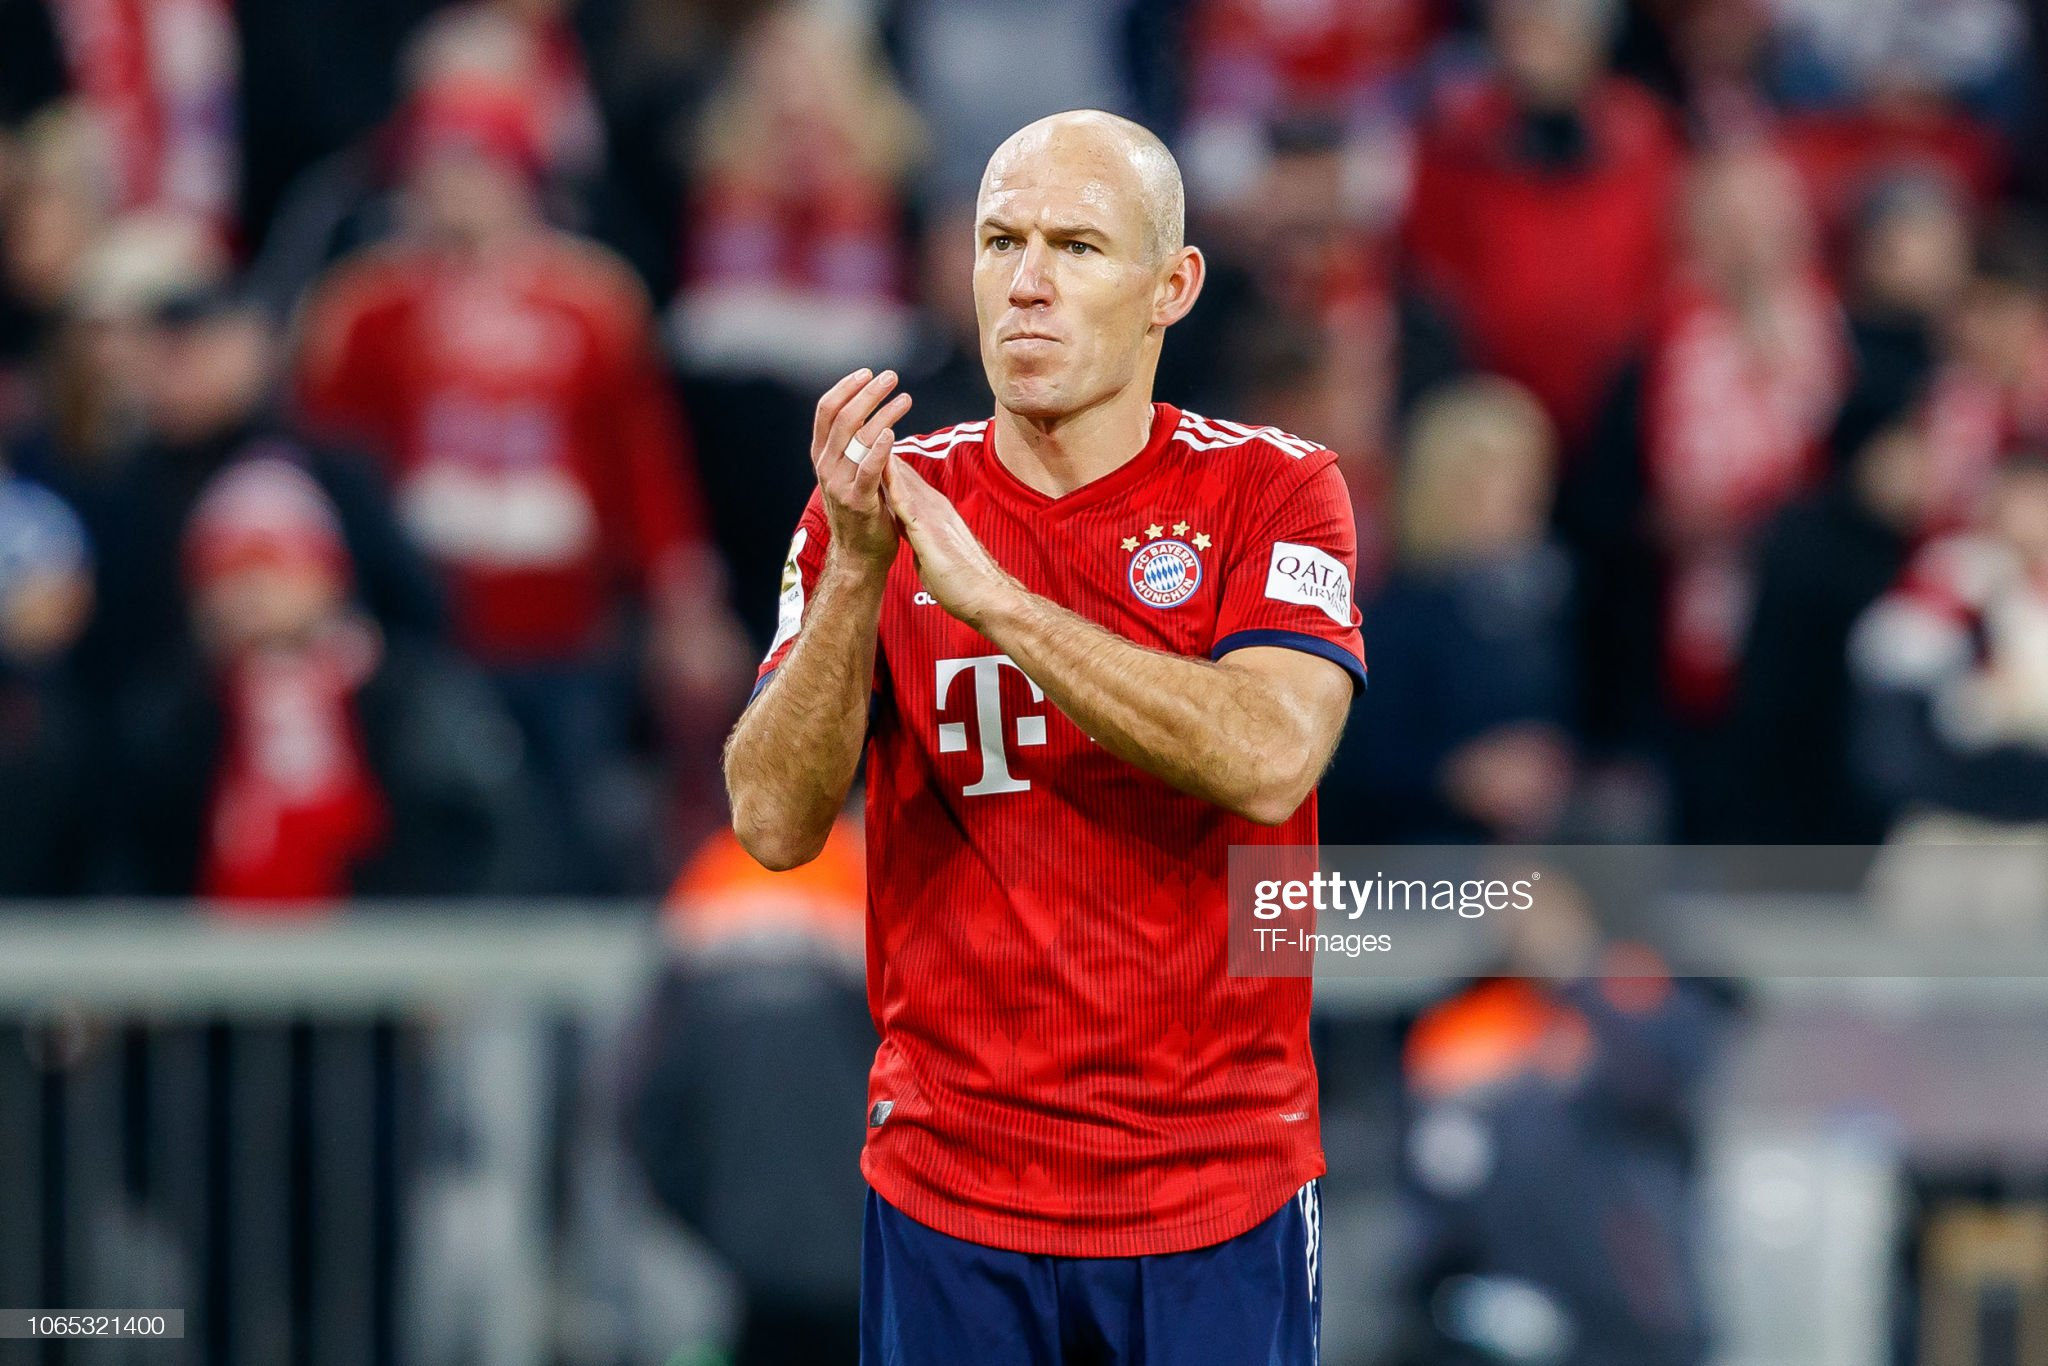 ¿Cuánto mide Arjen Robben? - Altura - Real height Arjen-robben-of-bayern-muenchen-gestures-during-the-bundesliga-match-picture-id1065321400?s=2048x2048